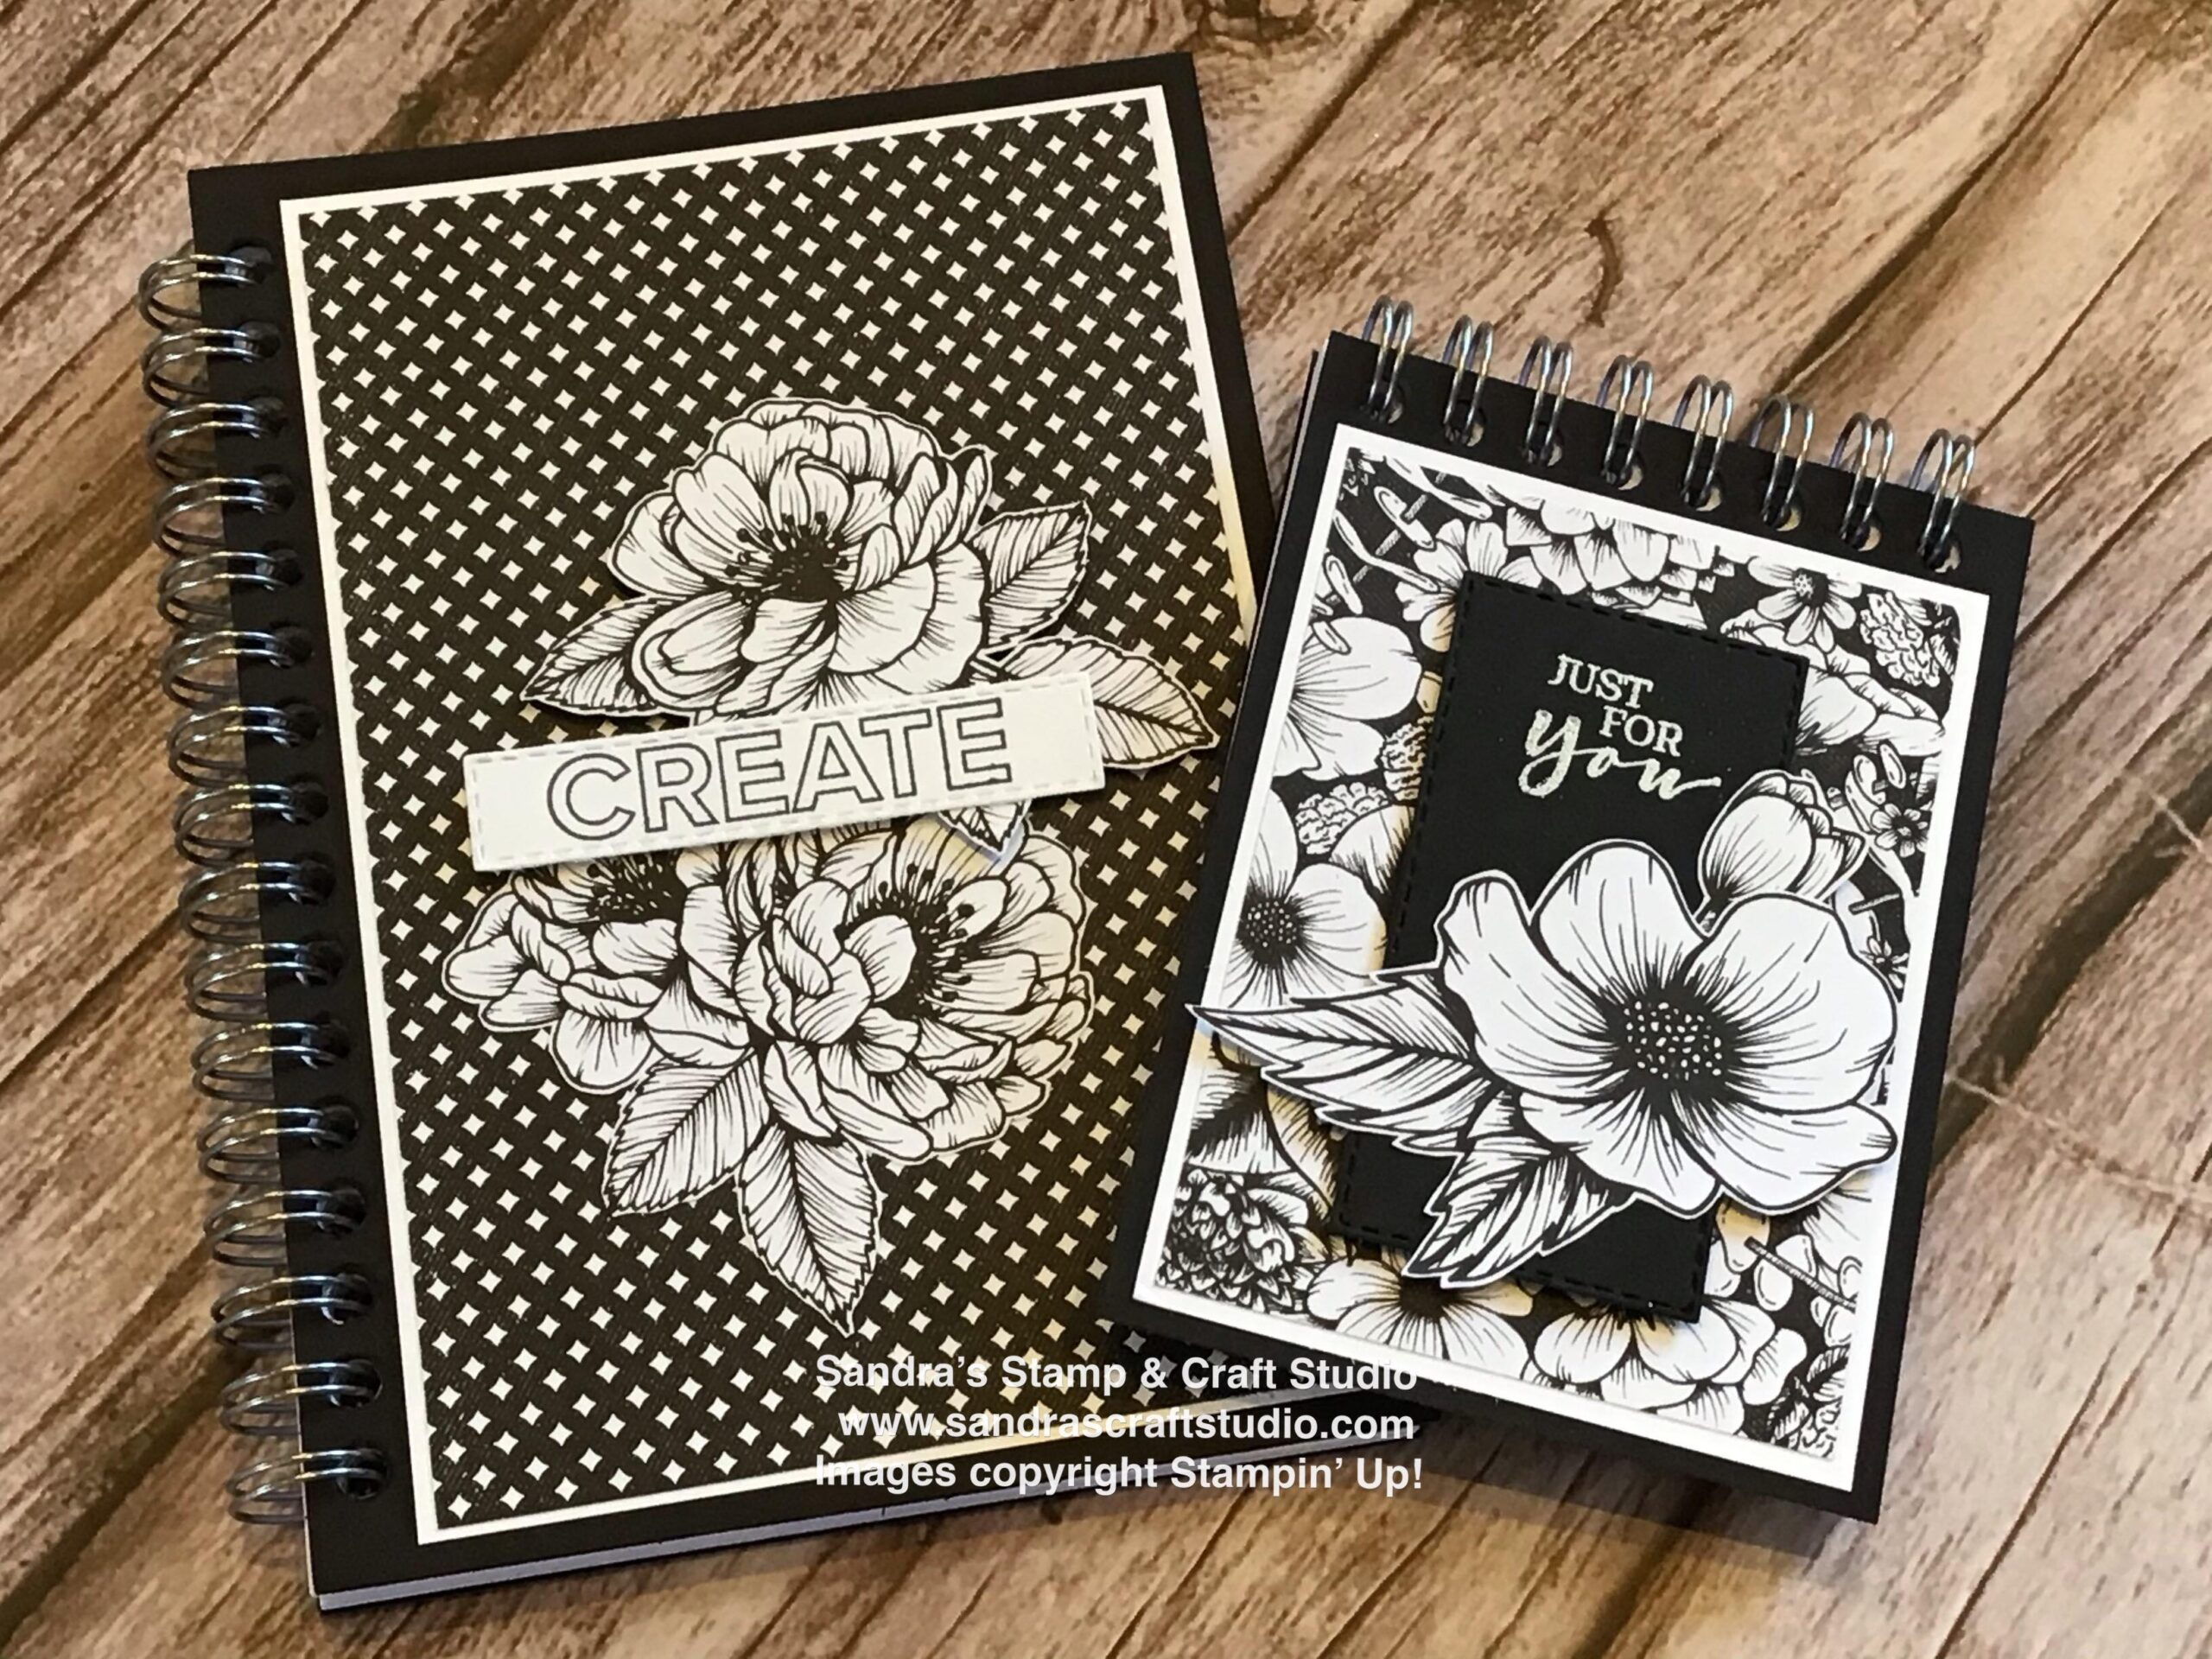 Handmade Monochrome covered Notebooks using True love Designer Series Papers